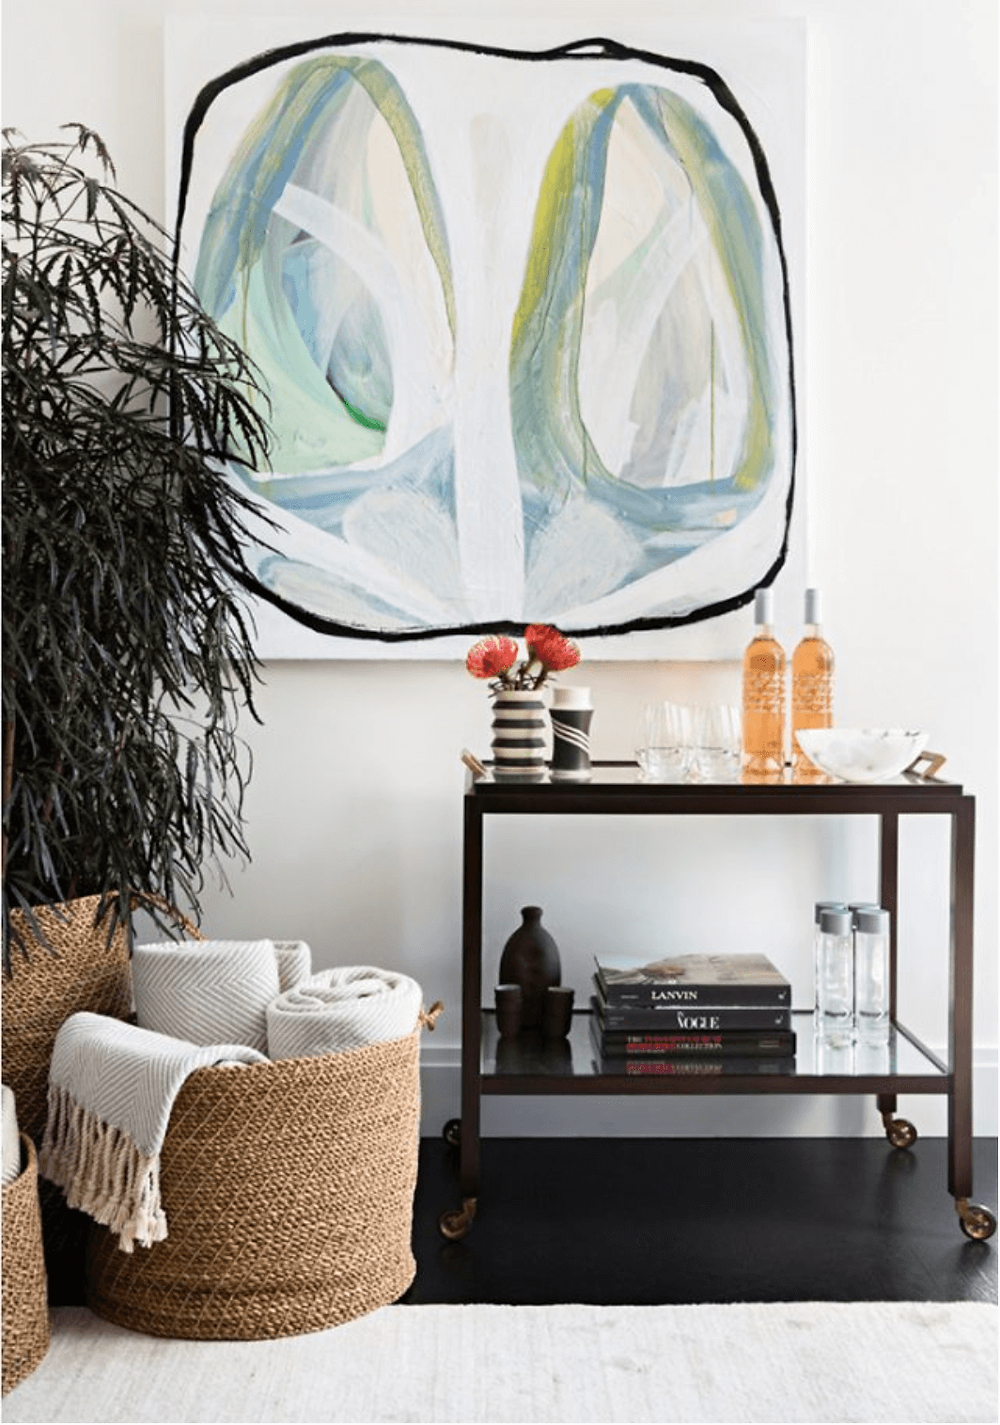 Nate Berkus artwork hanging aboce bar cart with spring flowers and light blankets in baskets.